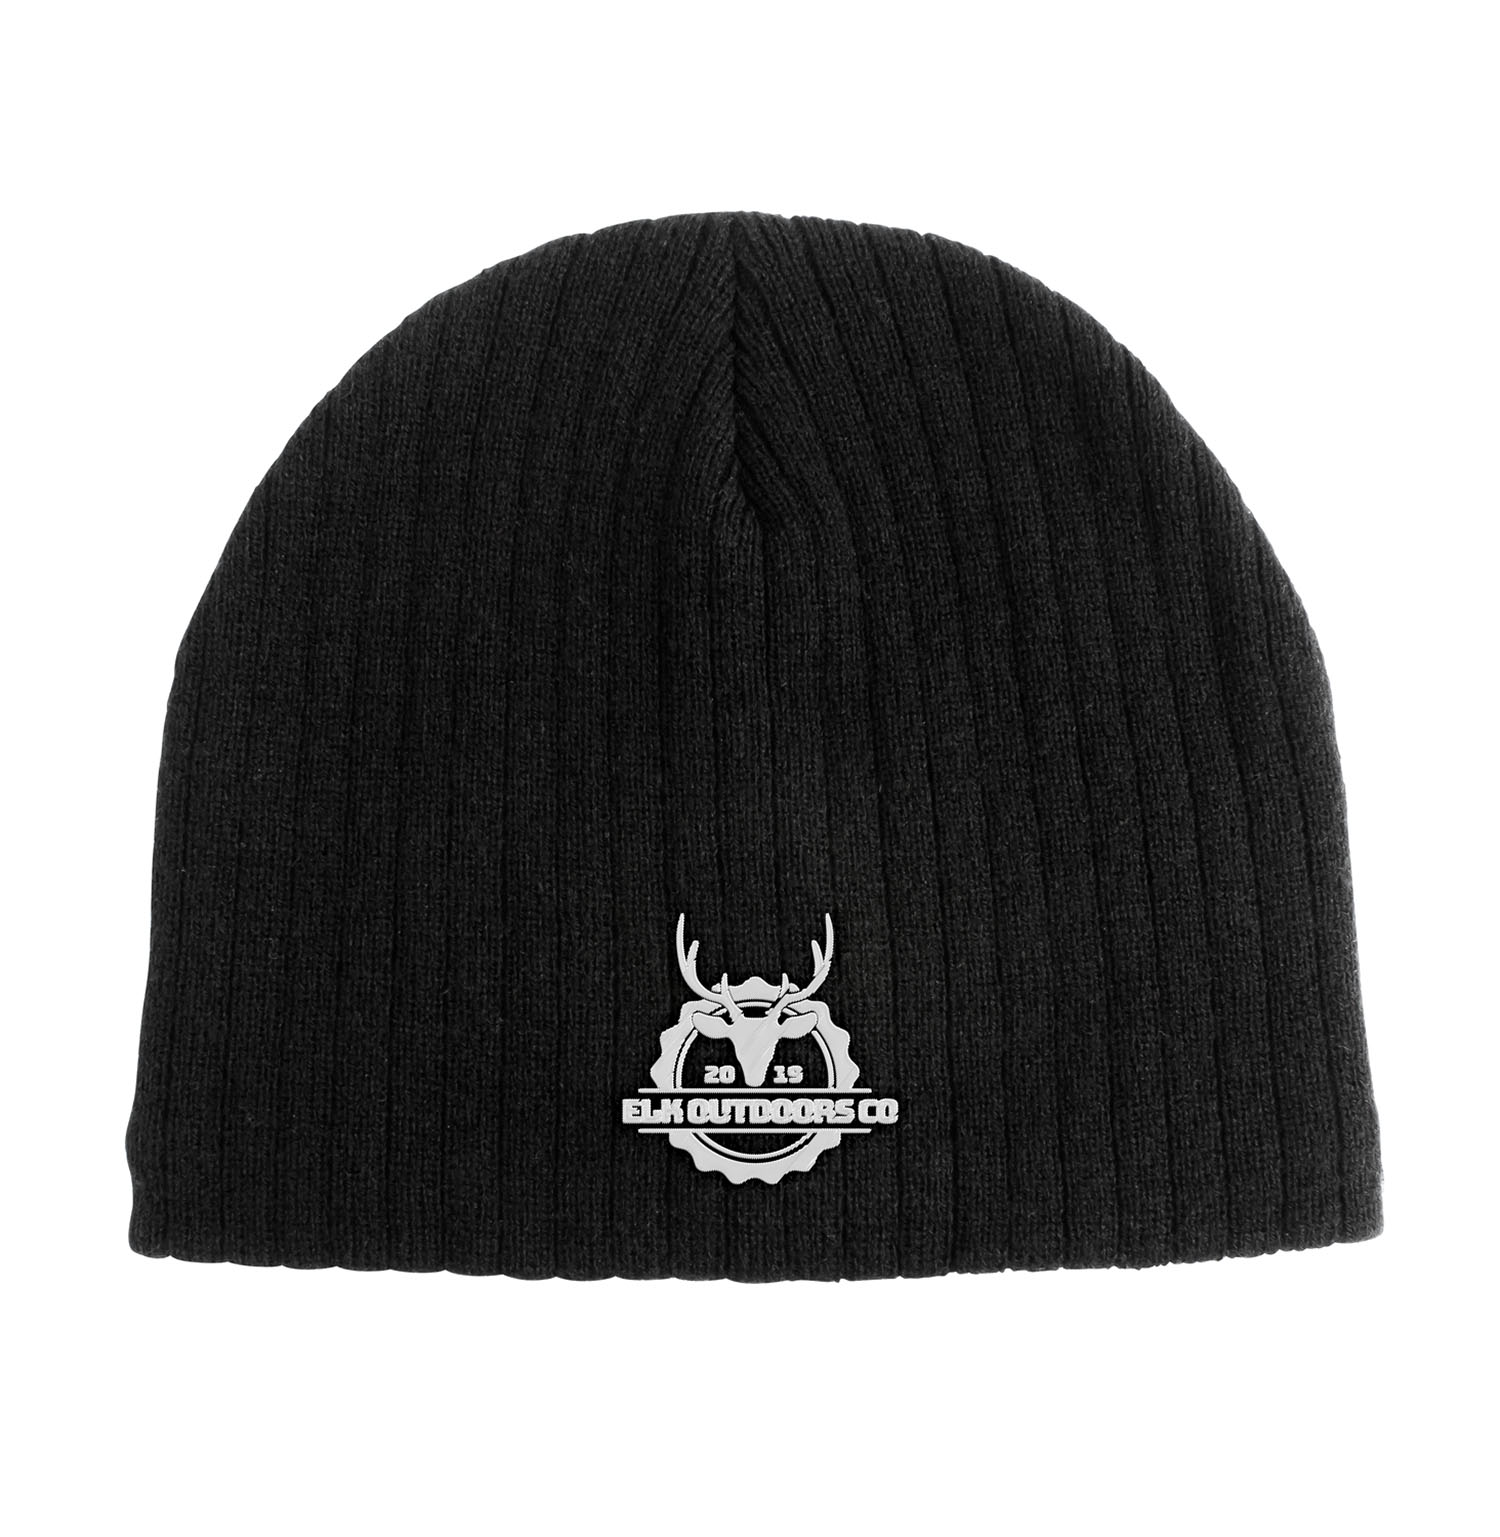 Cable Knit Beanie With Fleece Lining - Black